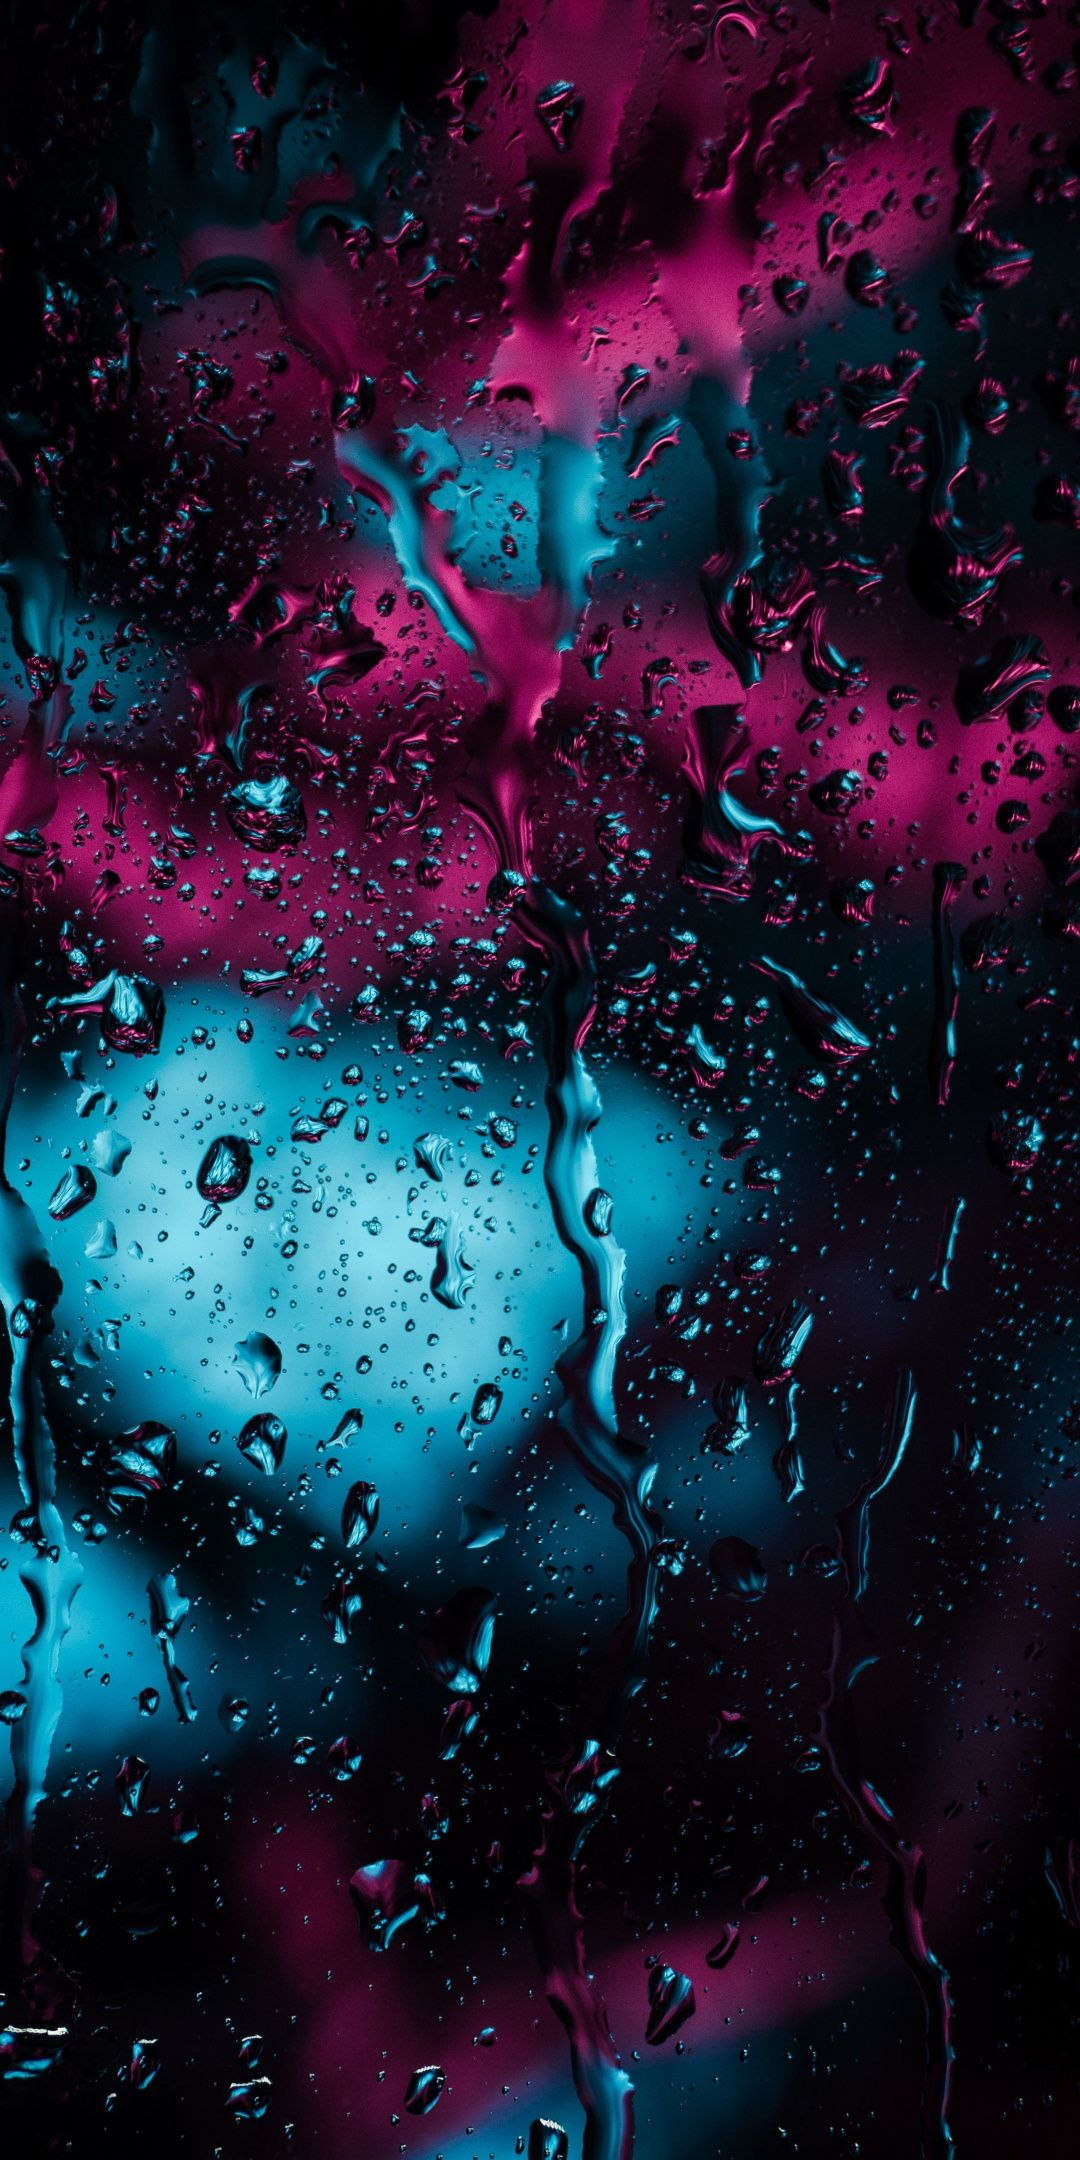 Water Drops Surface Dark 1080x2160 Wallpaper Qhd Wallpaper Live Wallpaper Iphone Neon Wallpaper